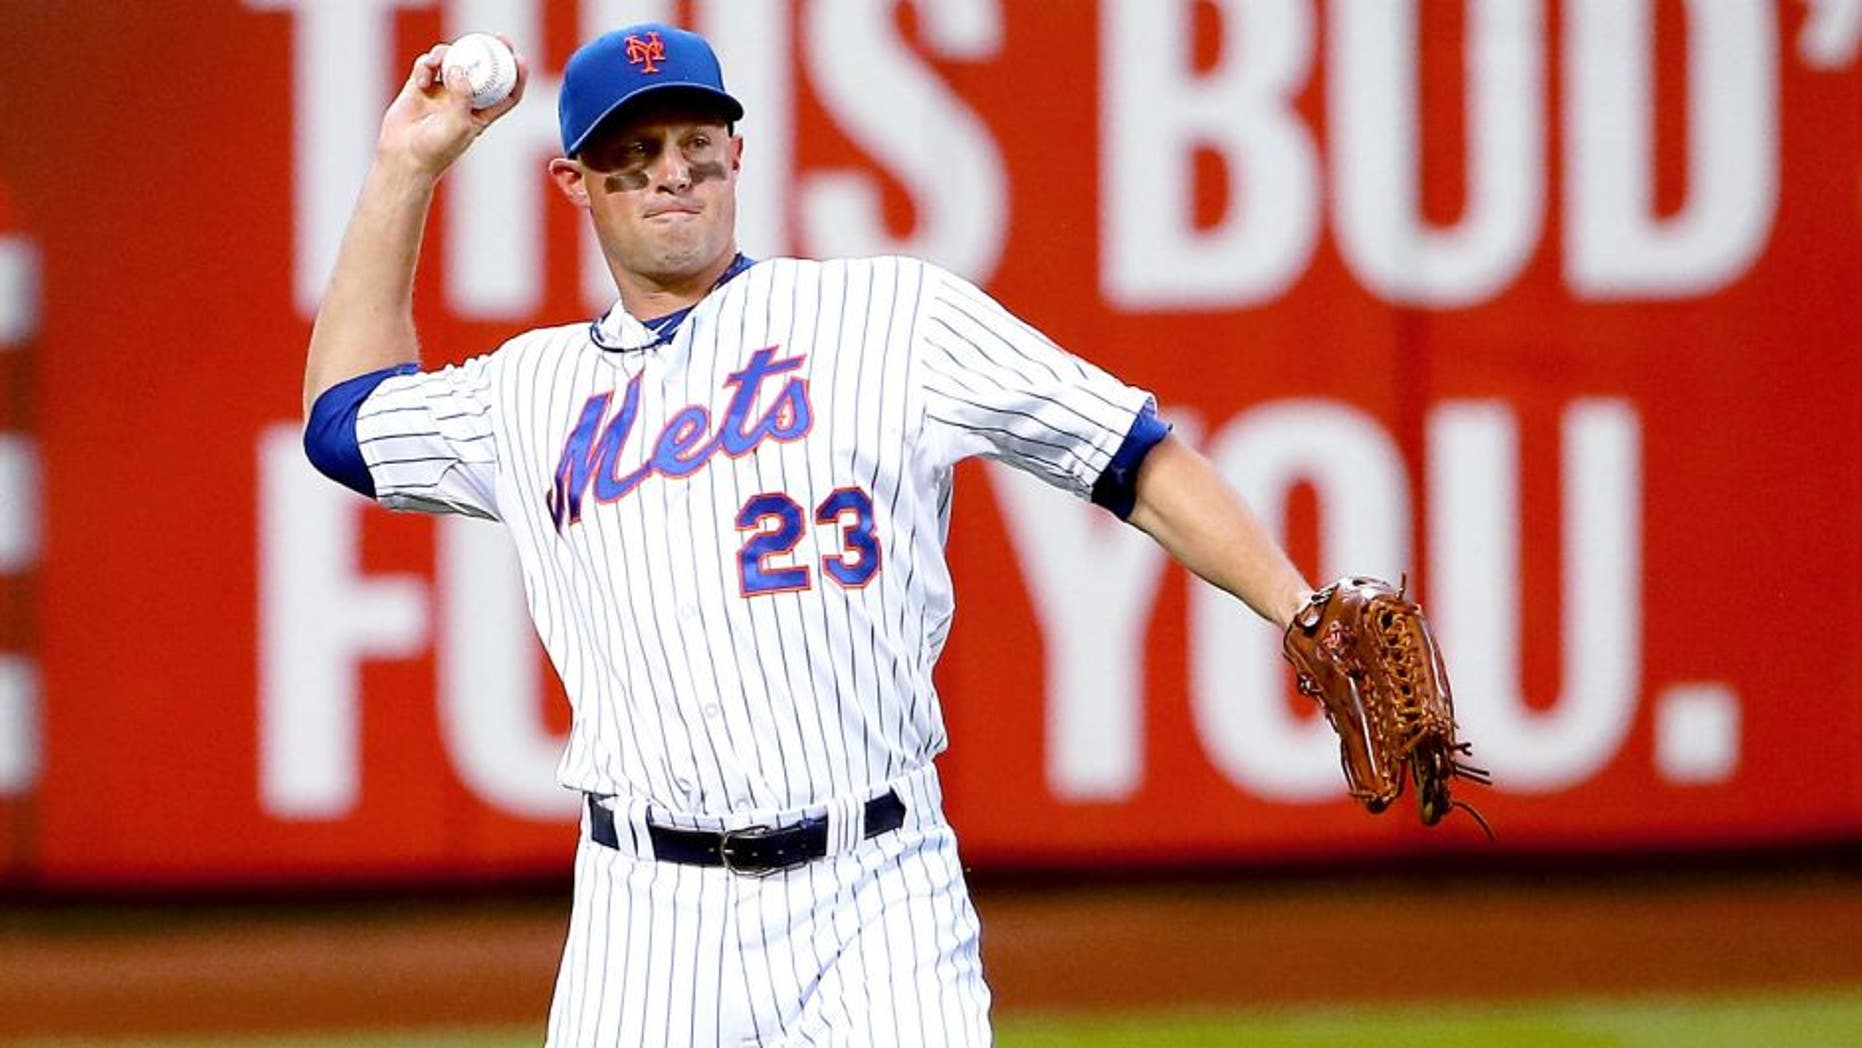 NEW YORK, NY - JUNE 30: Michael Cuddyer #23 of the New York Mets fields the ball in the third inning against the Chicago Cubs on June 30, 2015 at Citi Field in the Flushing Neighborhood of the Queens borough of New York City. (Photo by Nate Shron/Getty Images)